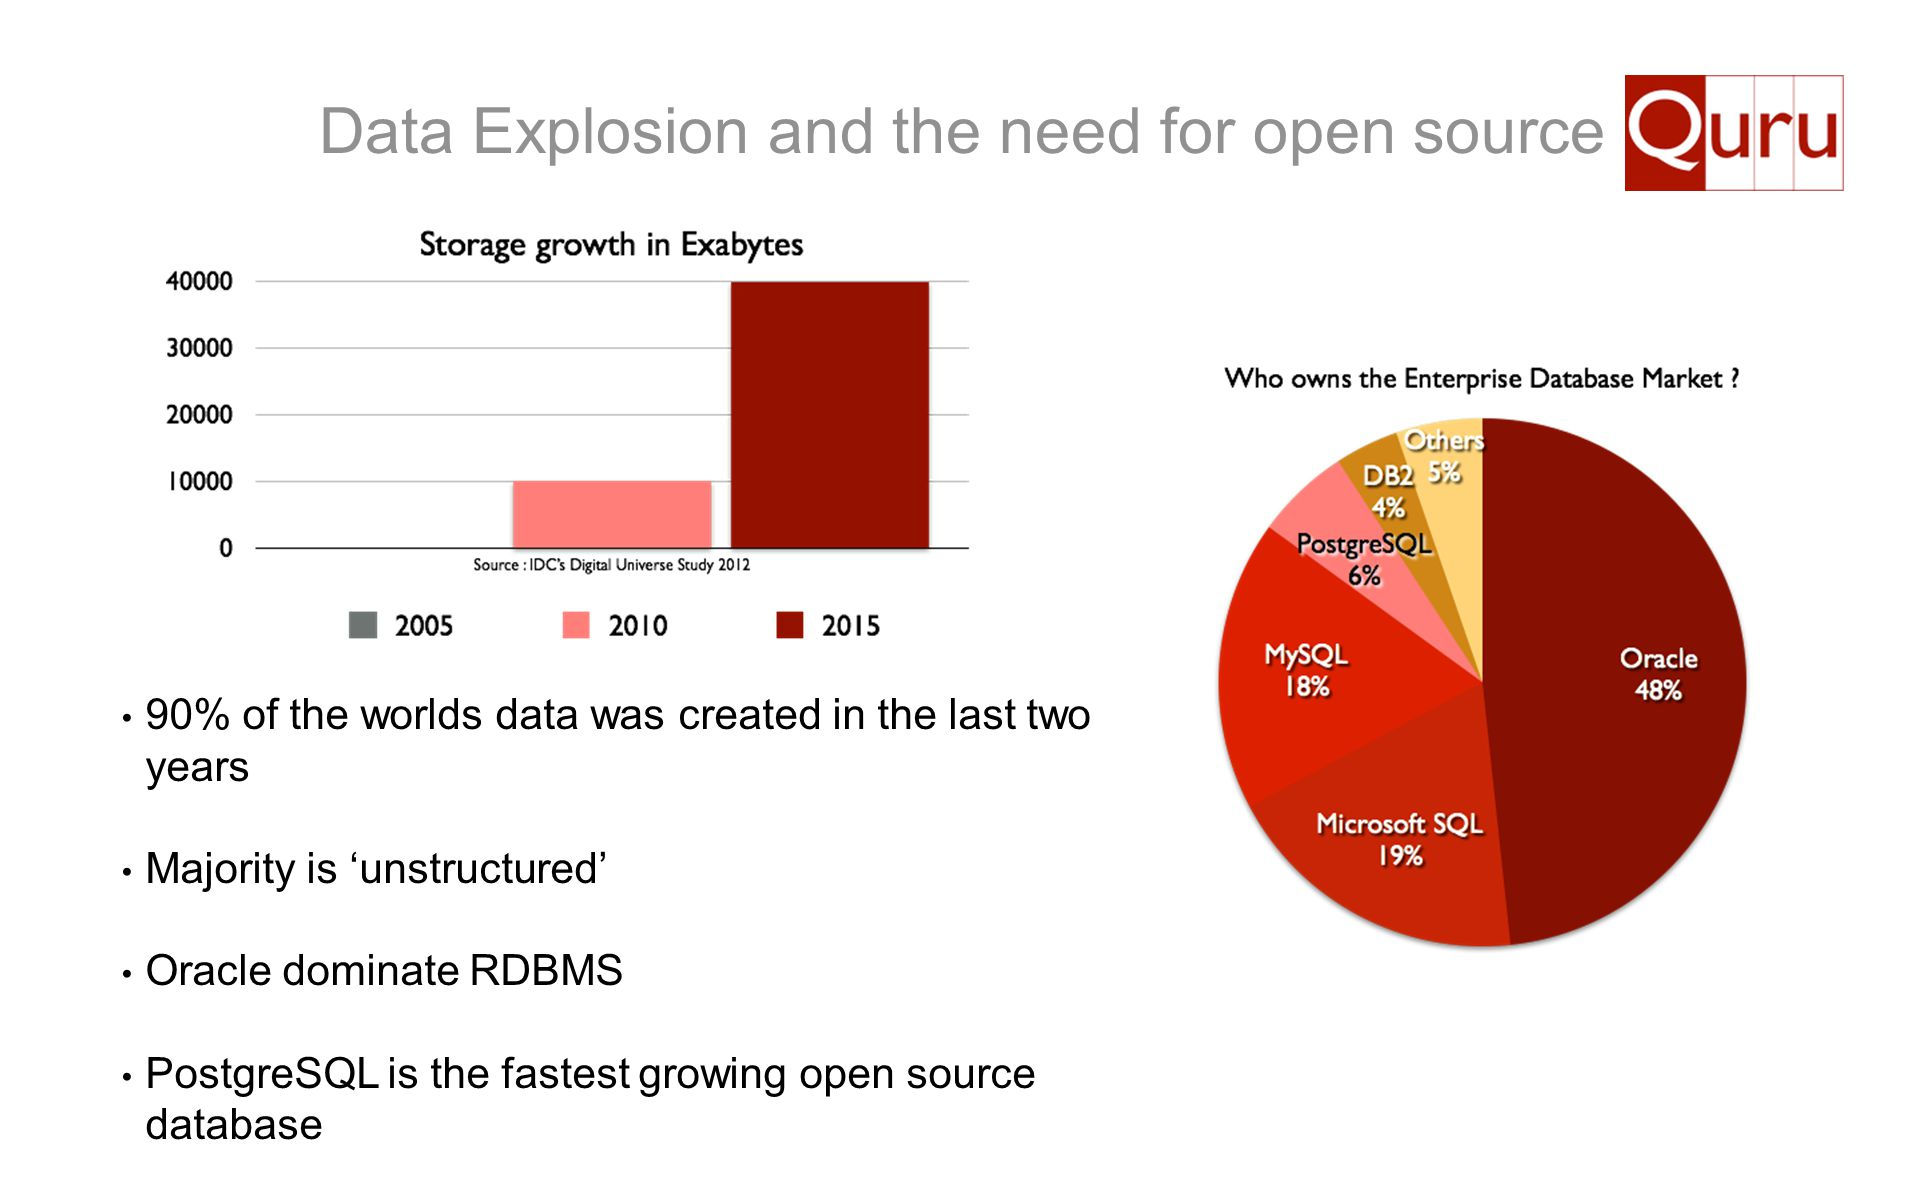 Data Explosion and the need for open source